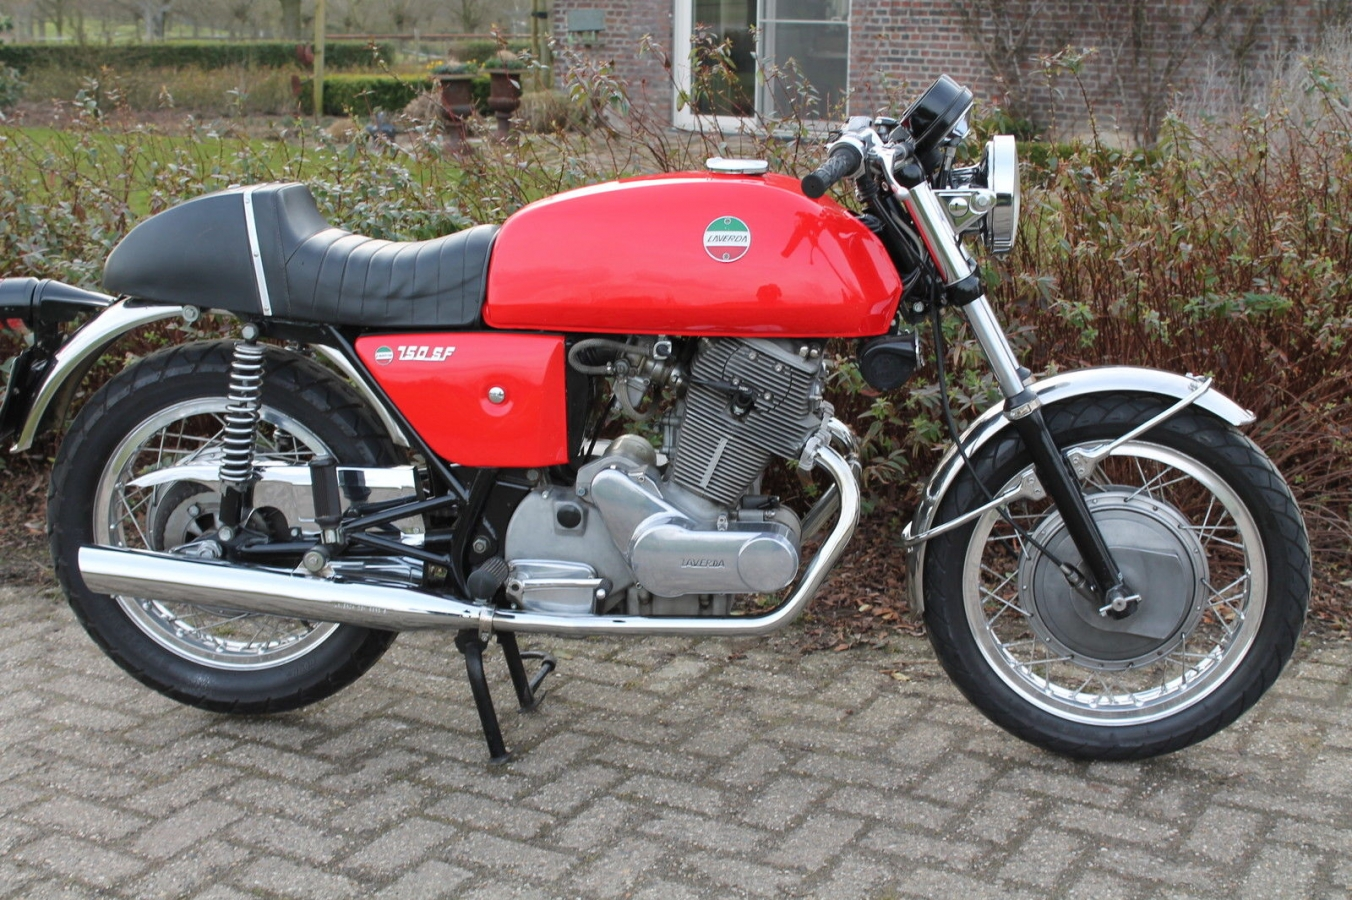 Laverda 750sf photo - 10